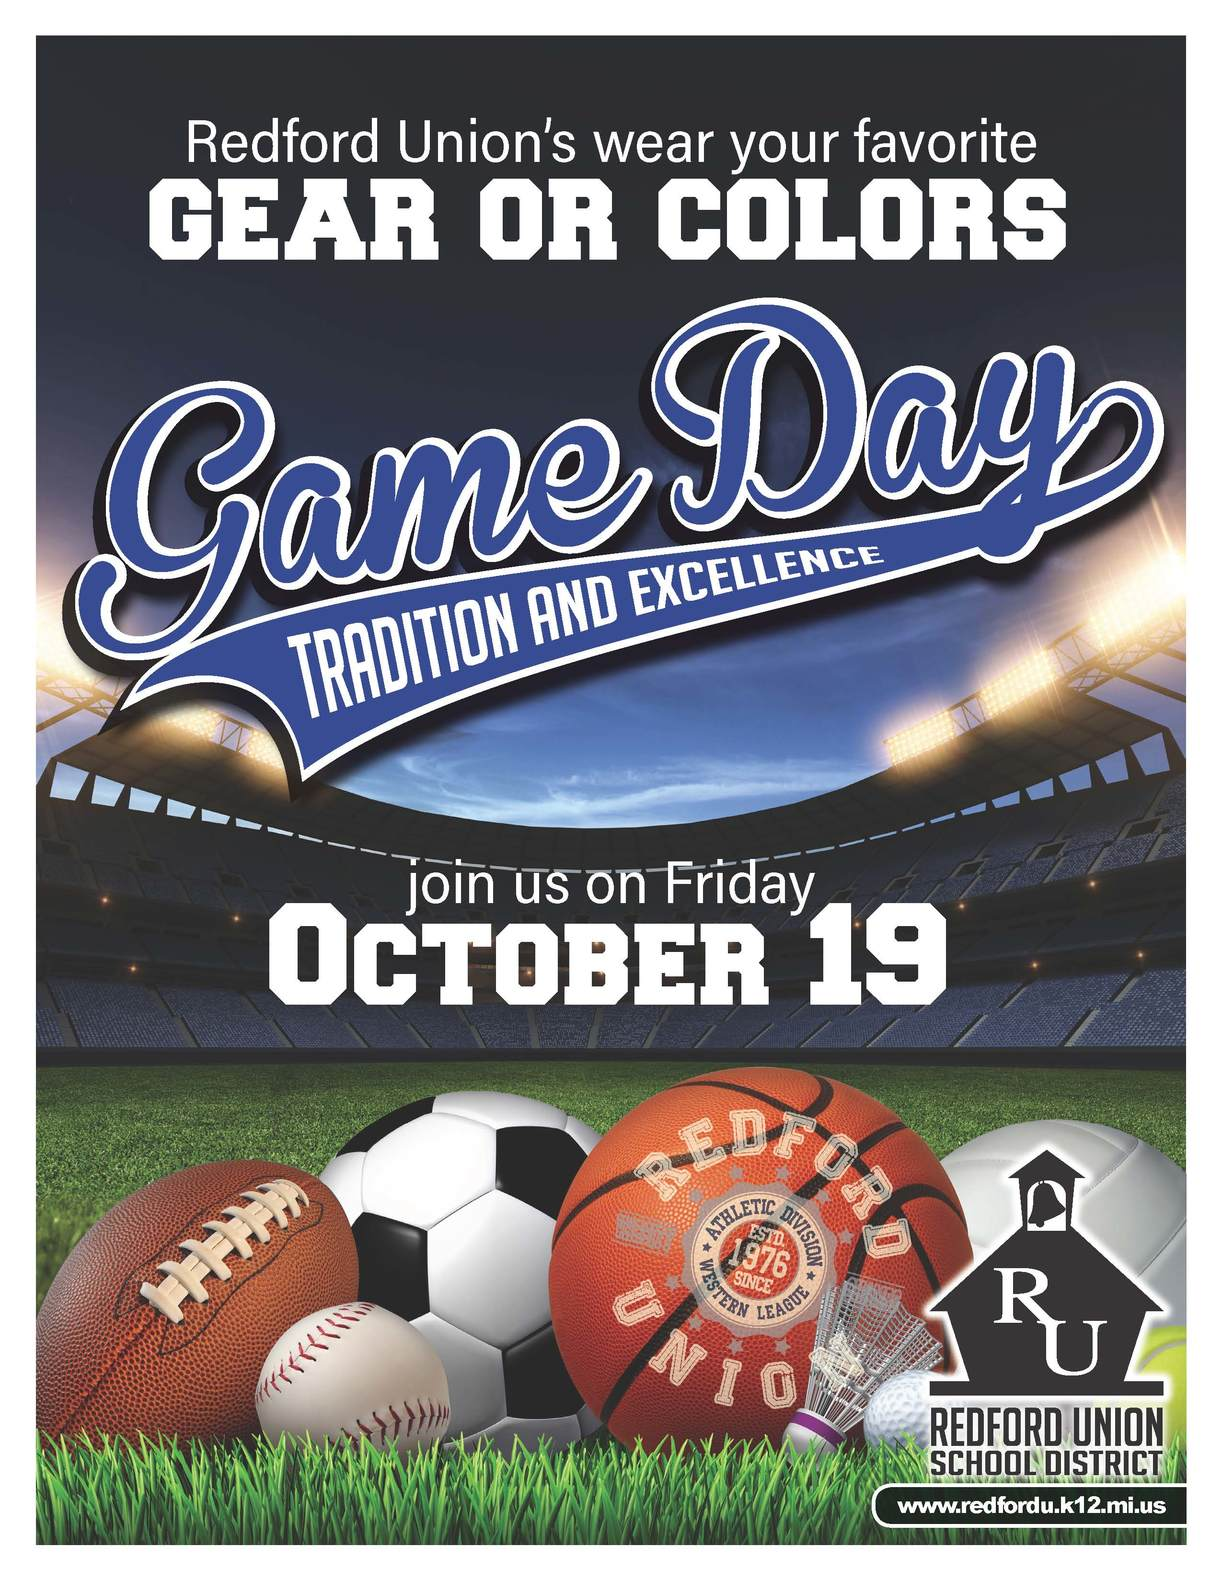 Redford Union's Game Day, Join us on Friday, October 19th and wear your favorite Gear and Colors.